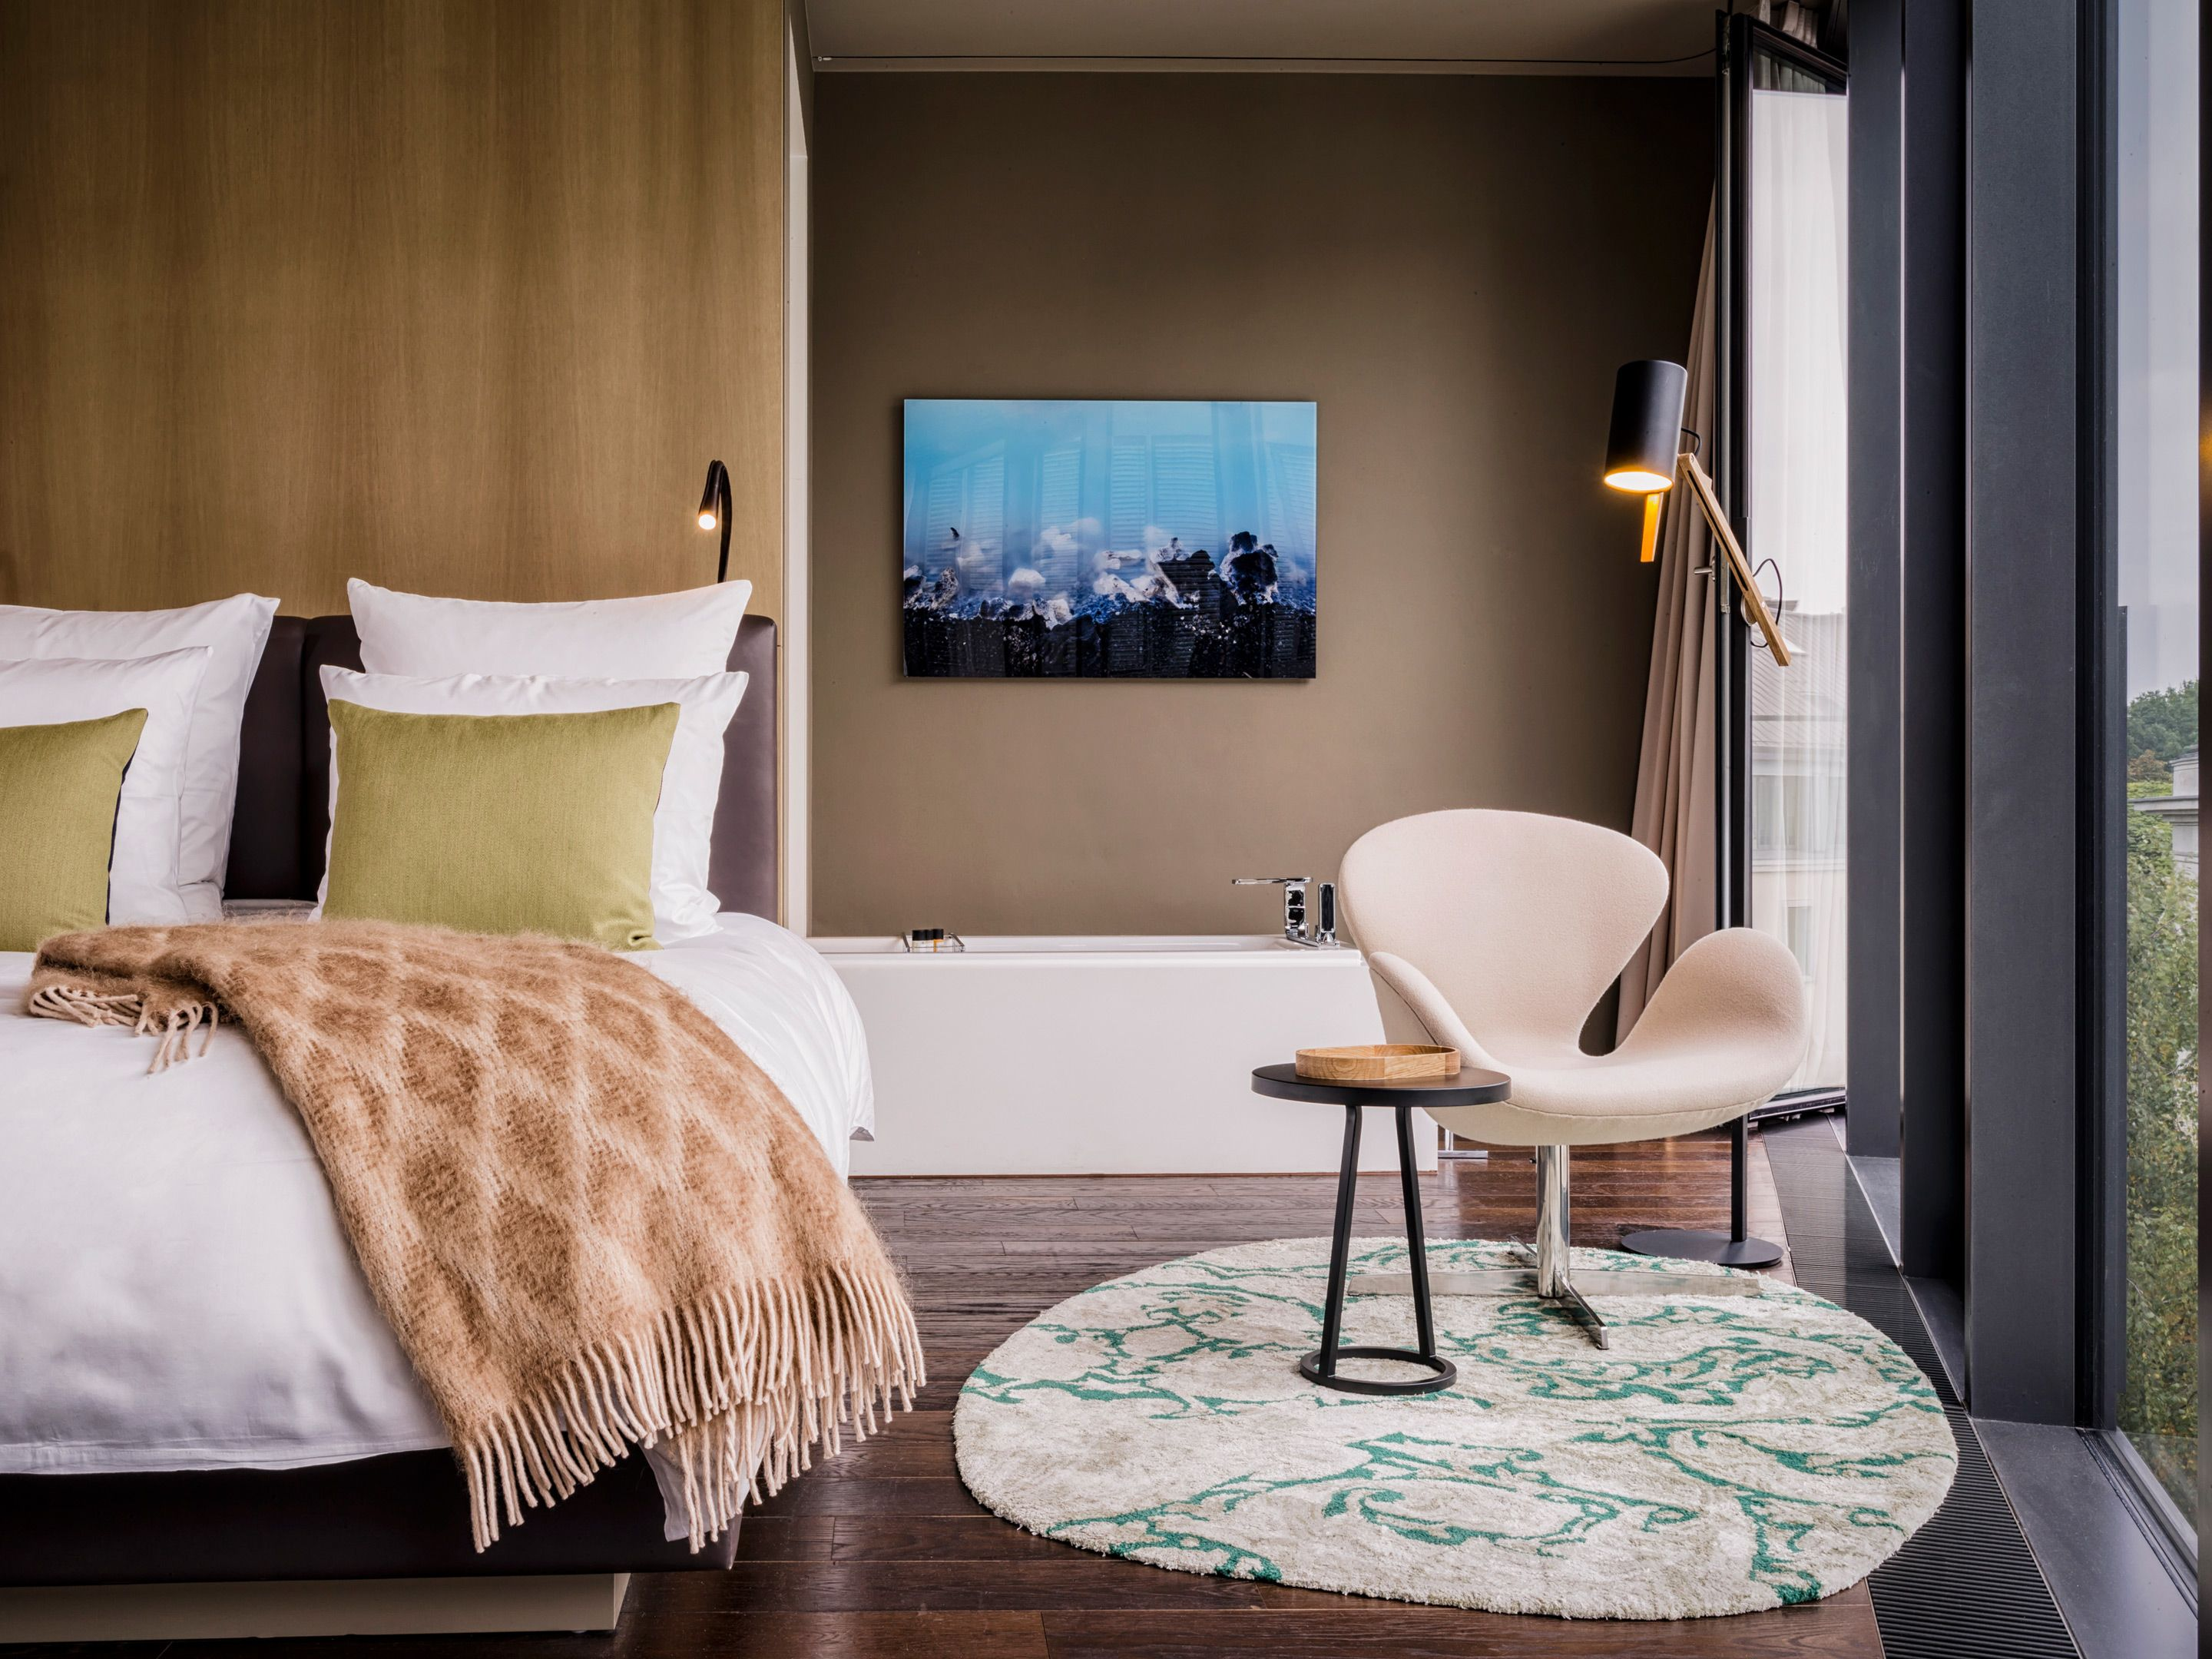 Rooms & Suites at Das Stue in Berlin, Germany - Design Hotels™